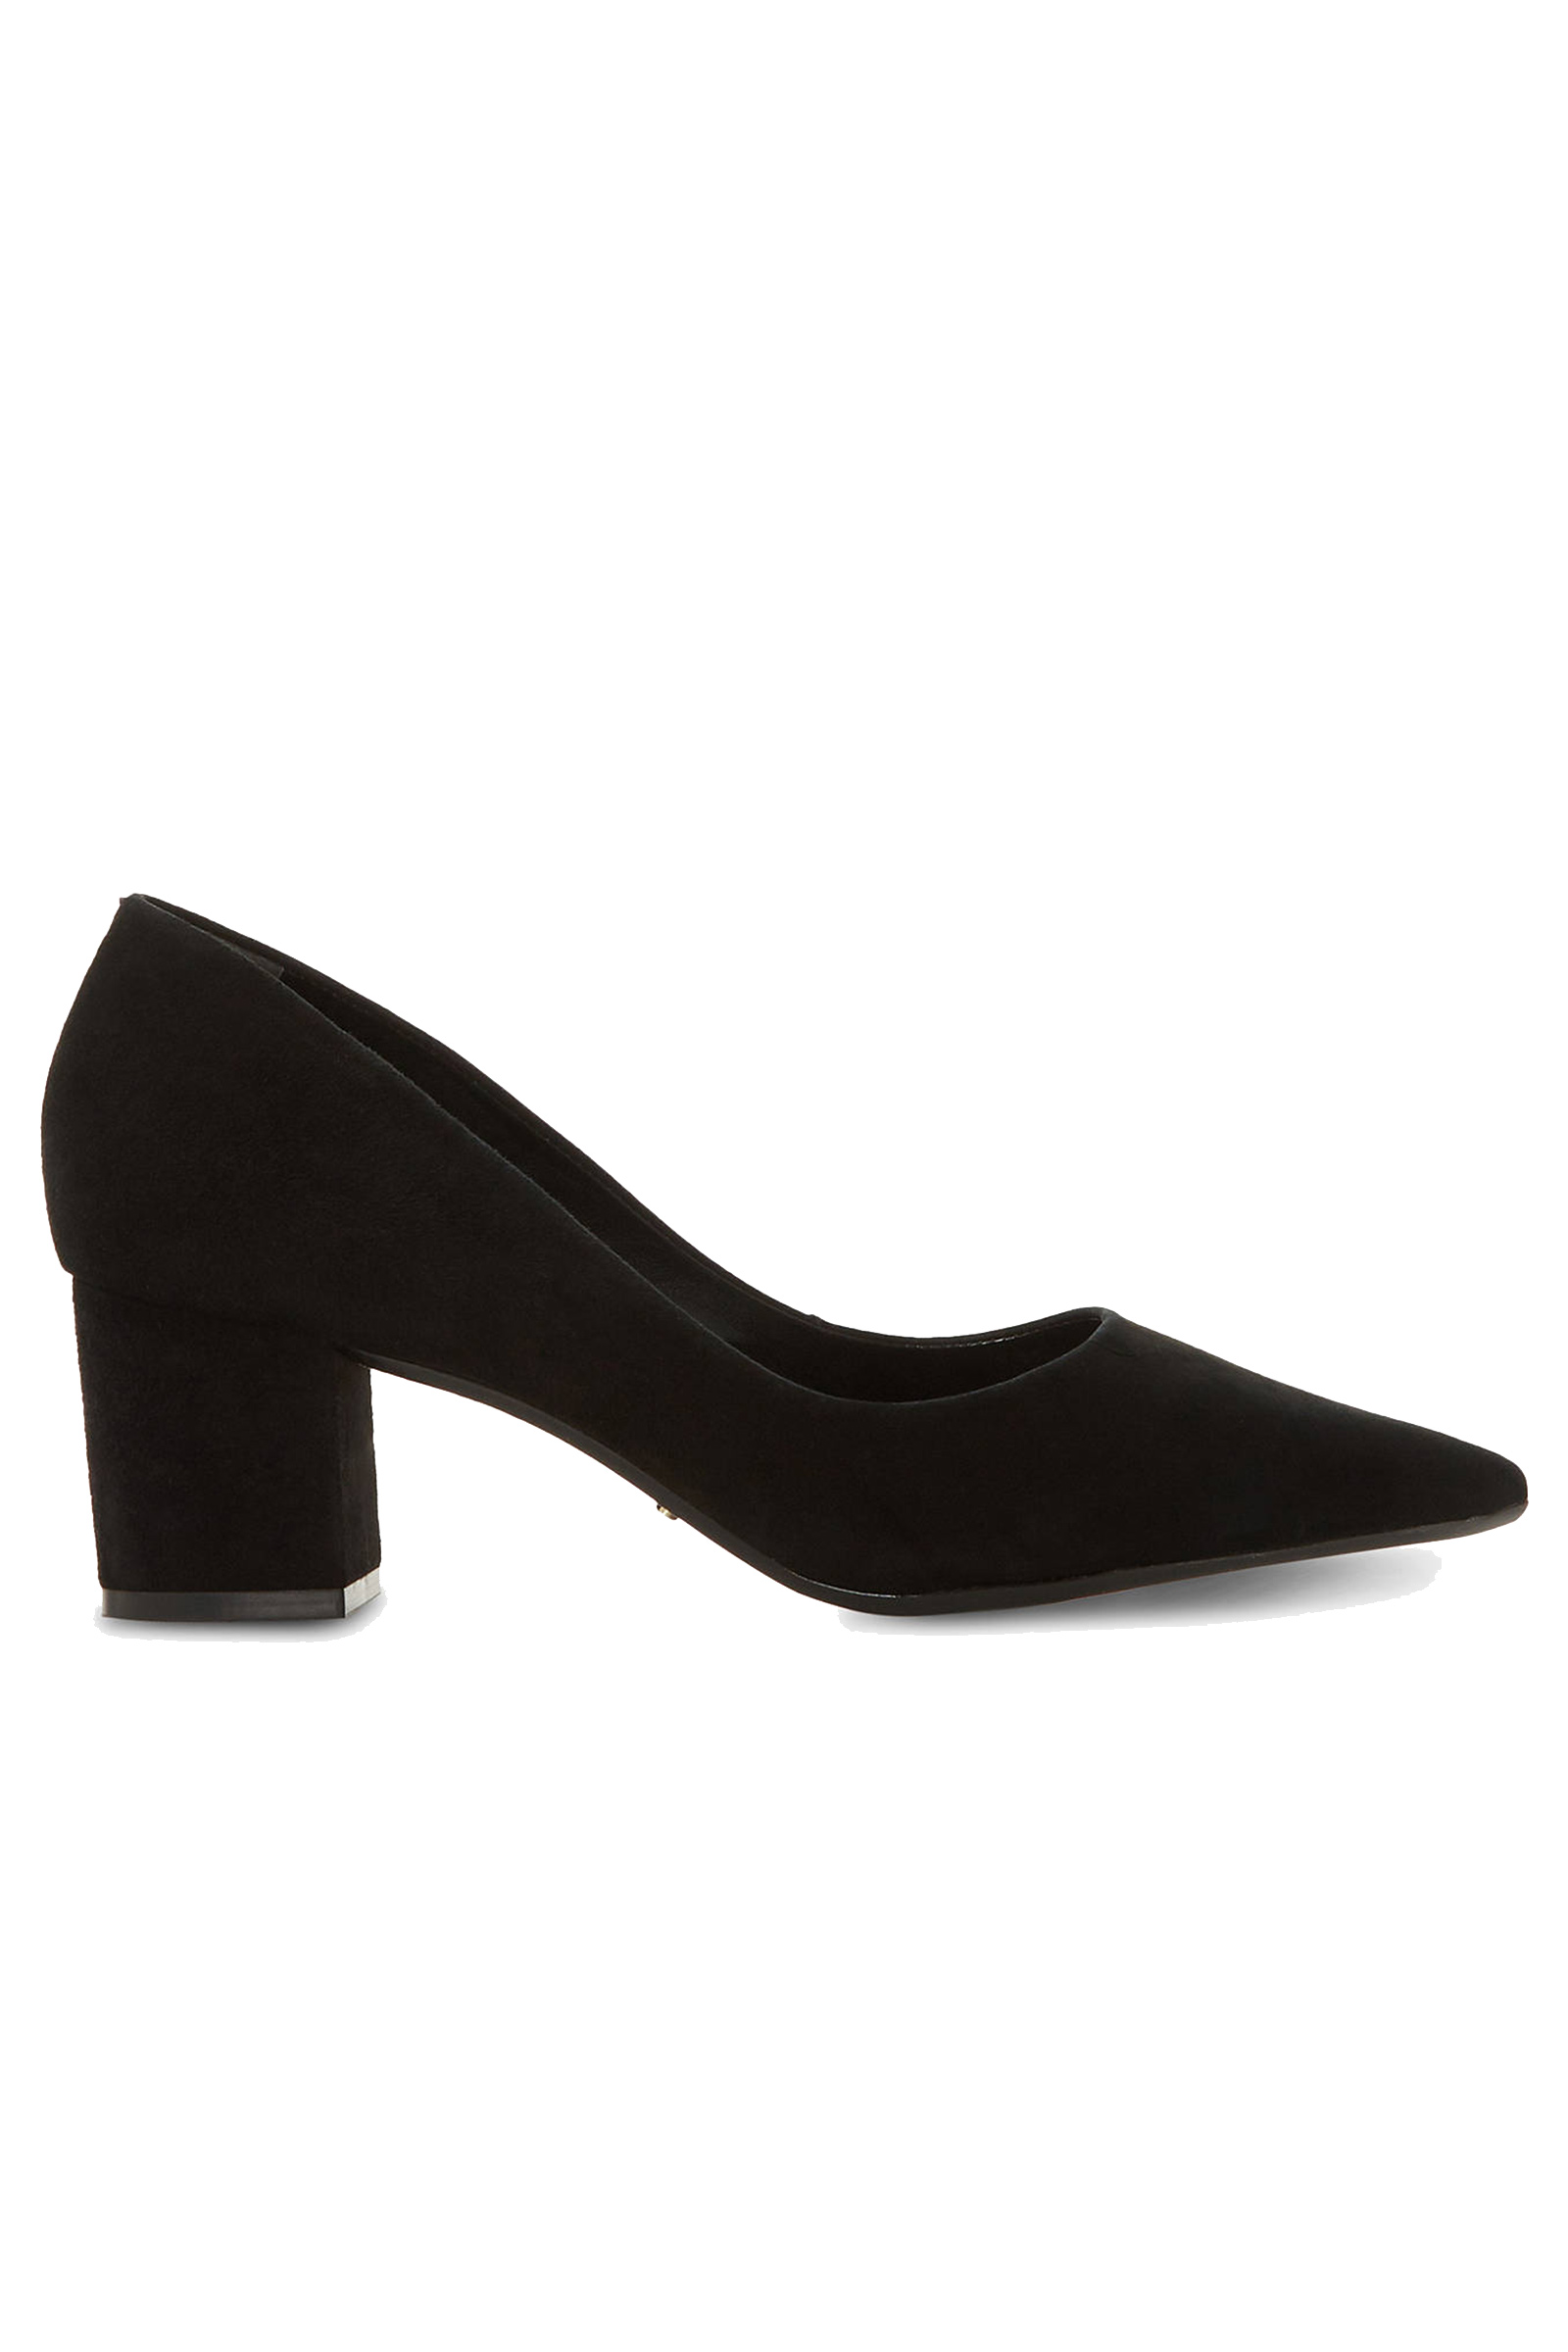 Click to Buy Dune Court Shoes